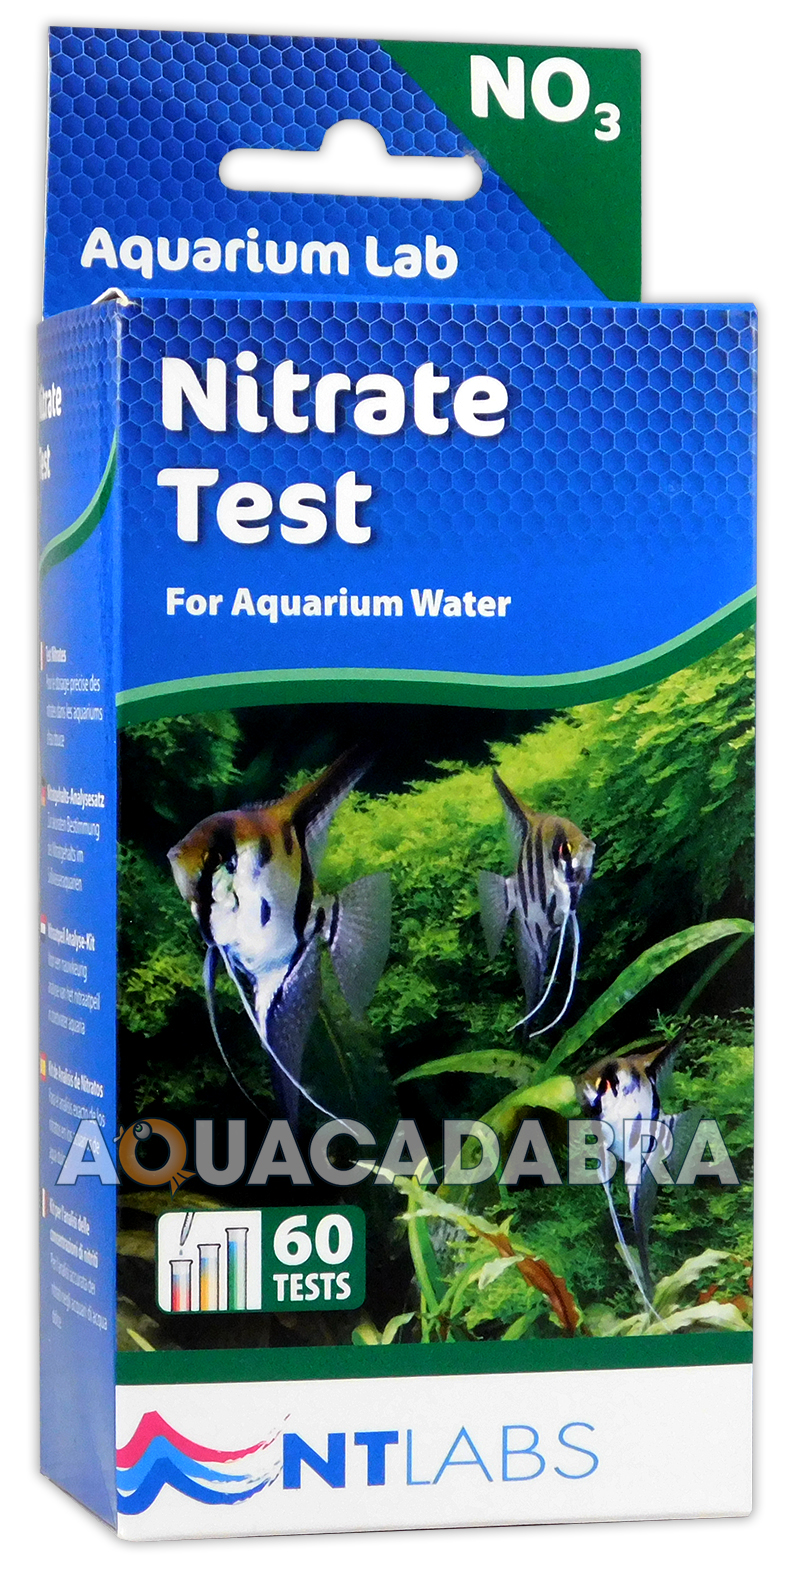 Nt labs test kit tropical coldwater fish tank aquarium lab for Fish tank water test kit